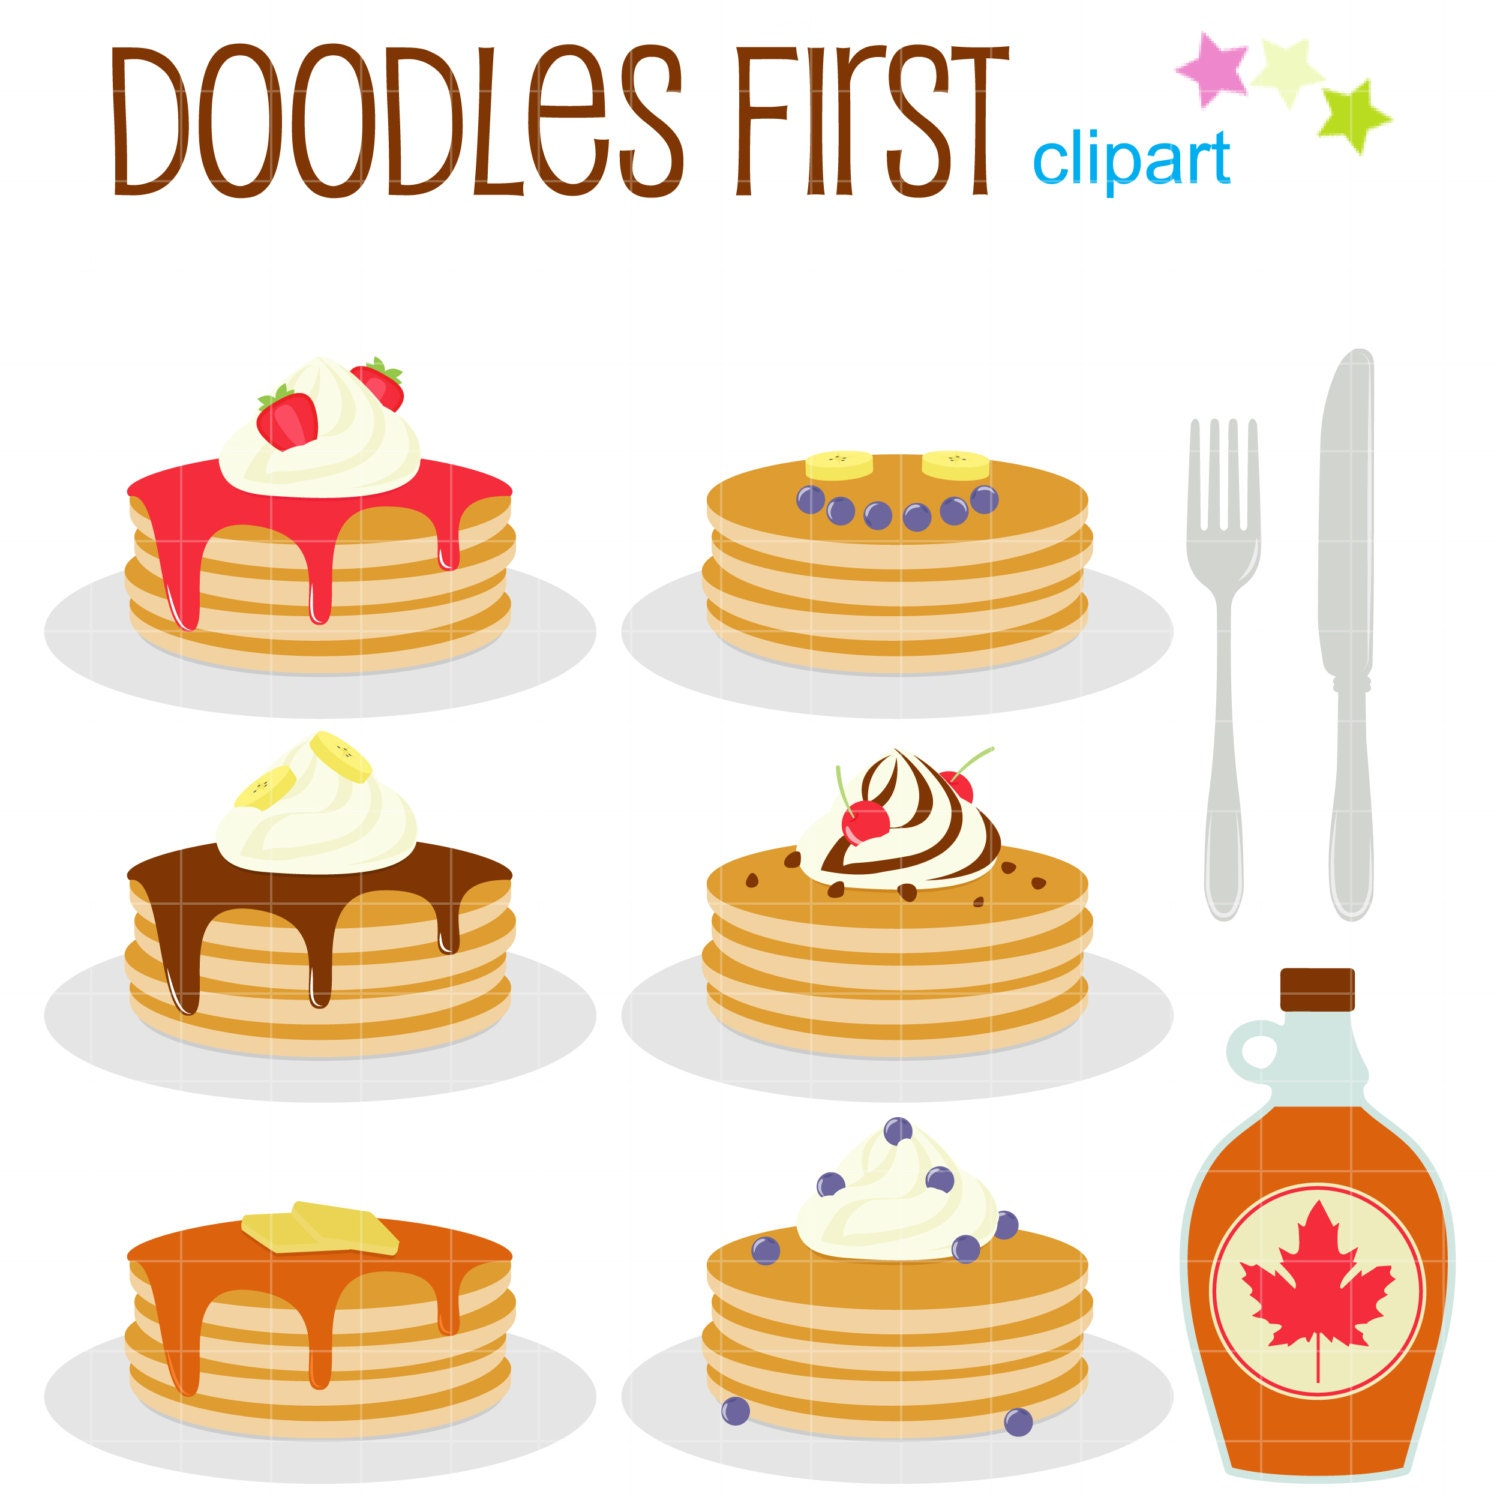 Clip Art Pancake Clipart pancake clipart etsy party clip art for scrapbooking card making cupcake toppers paper crafts